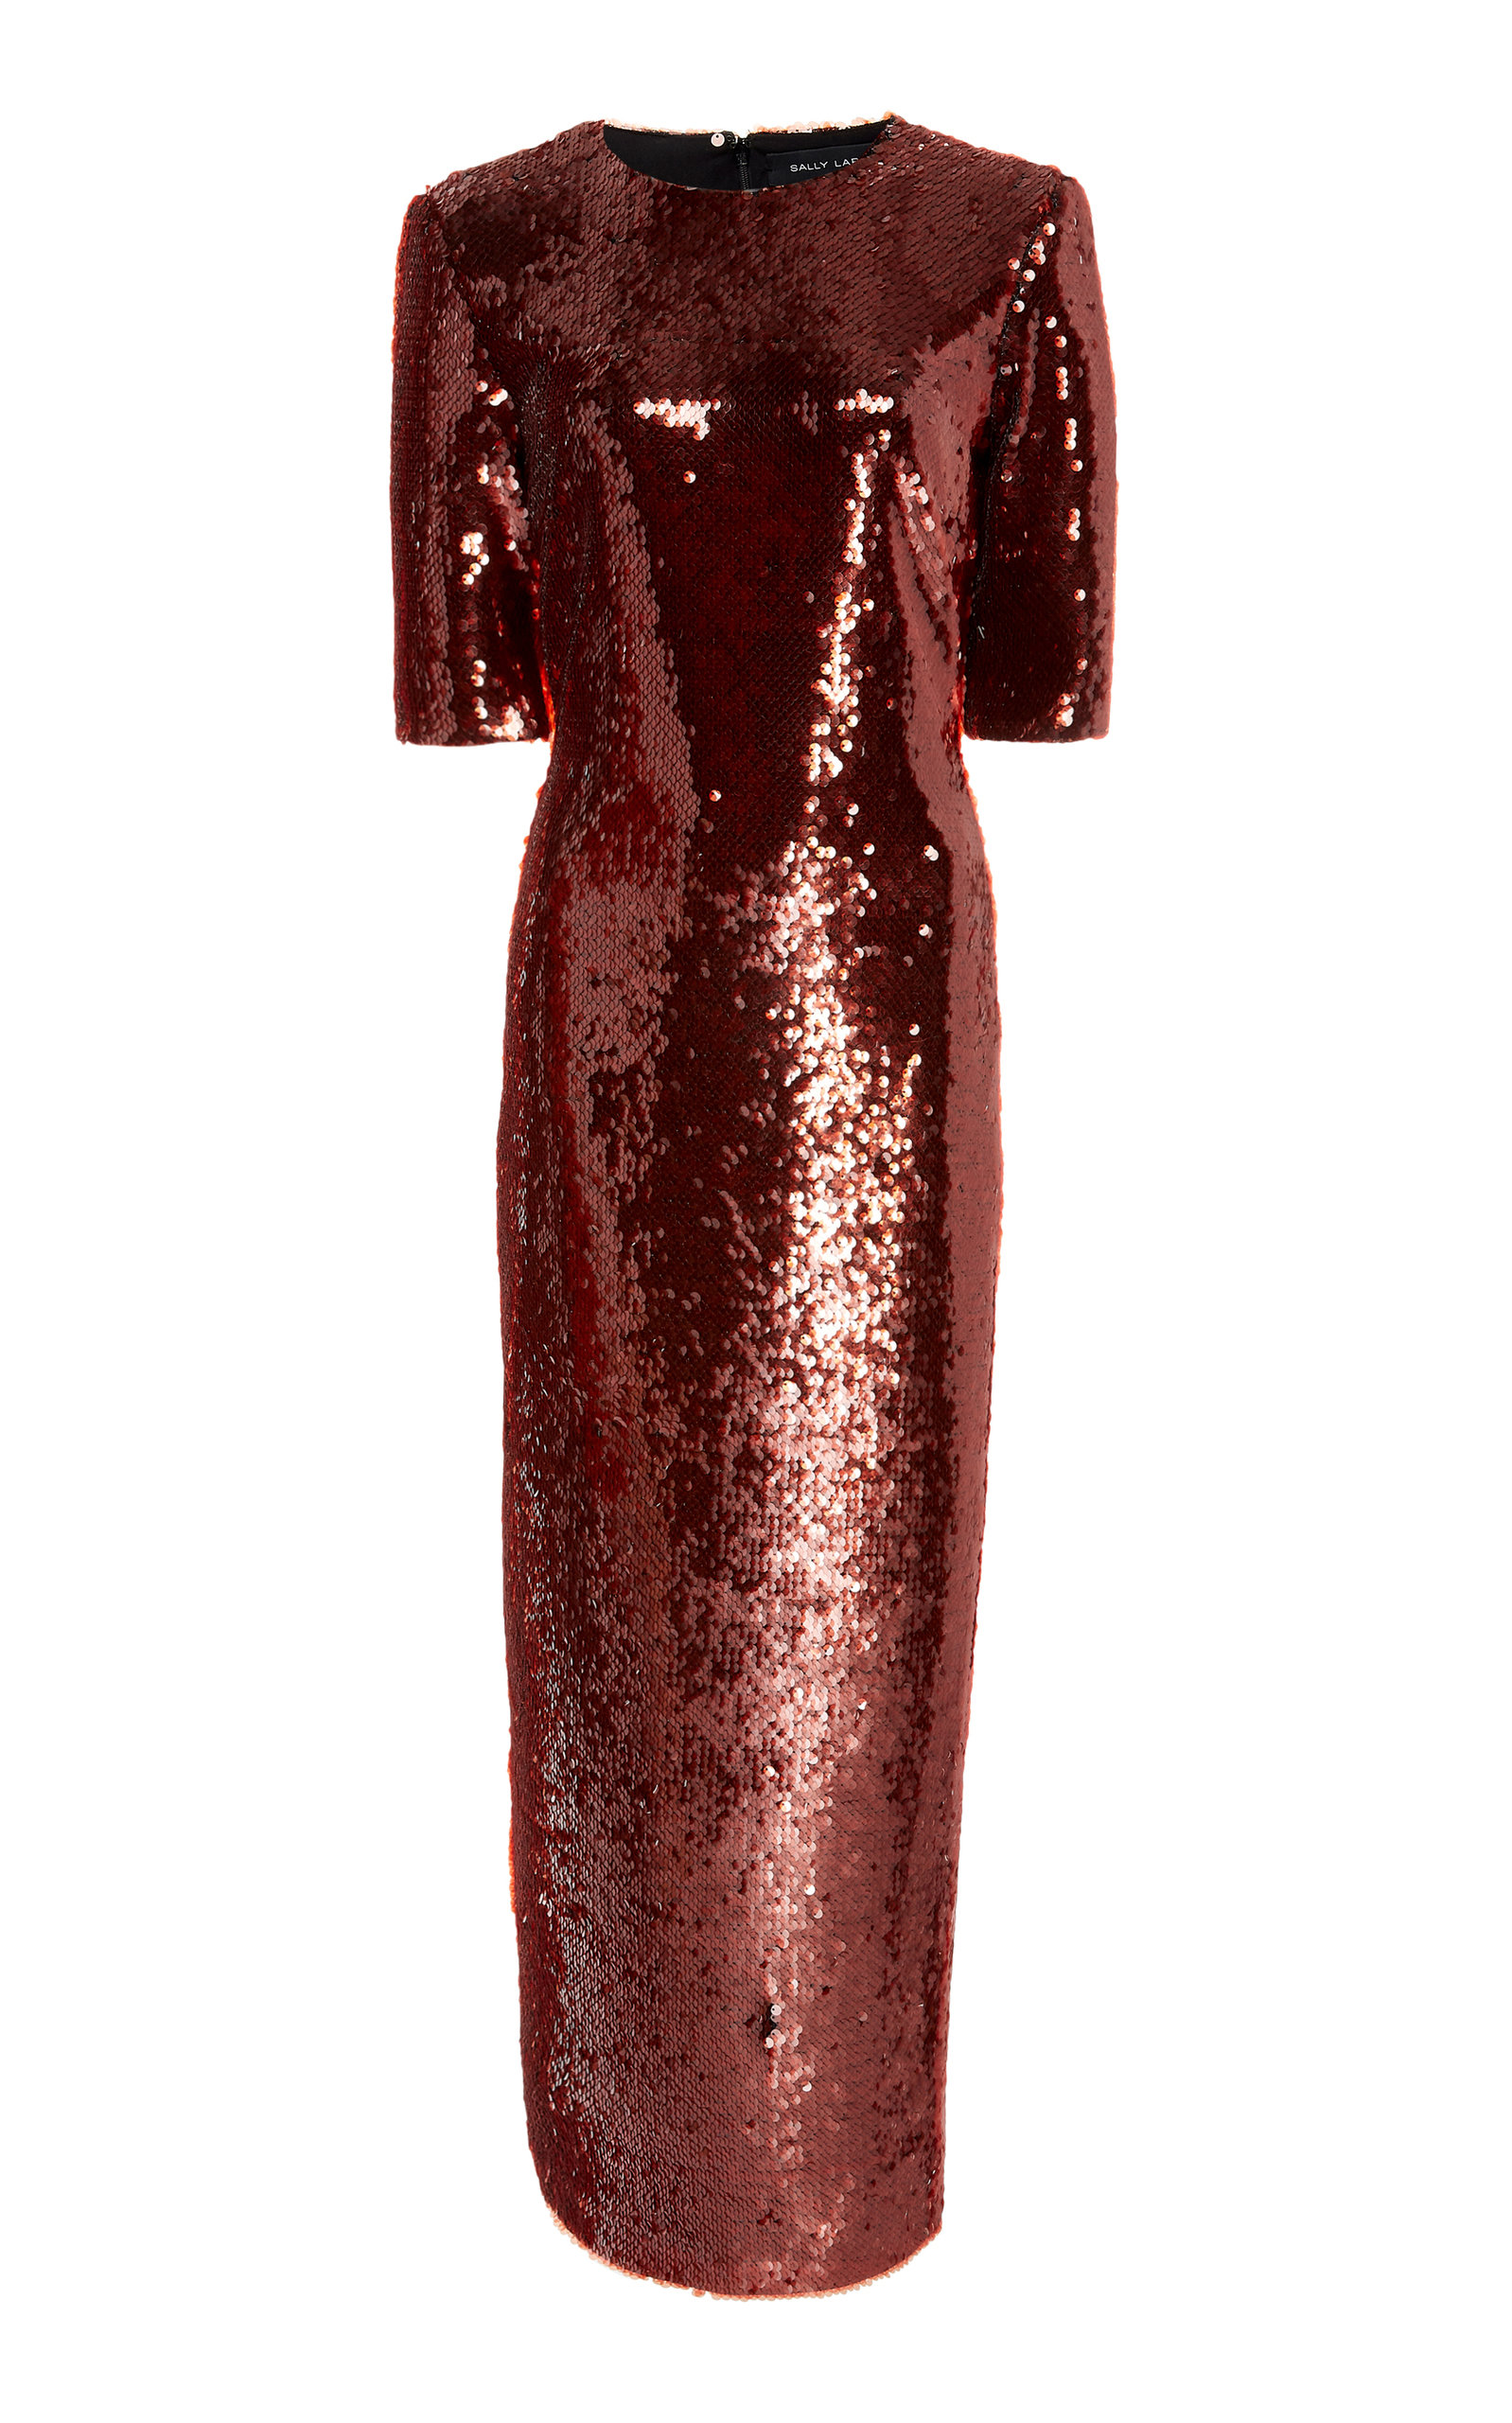 Sequined Maxi Dress by Sally La Pointe